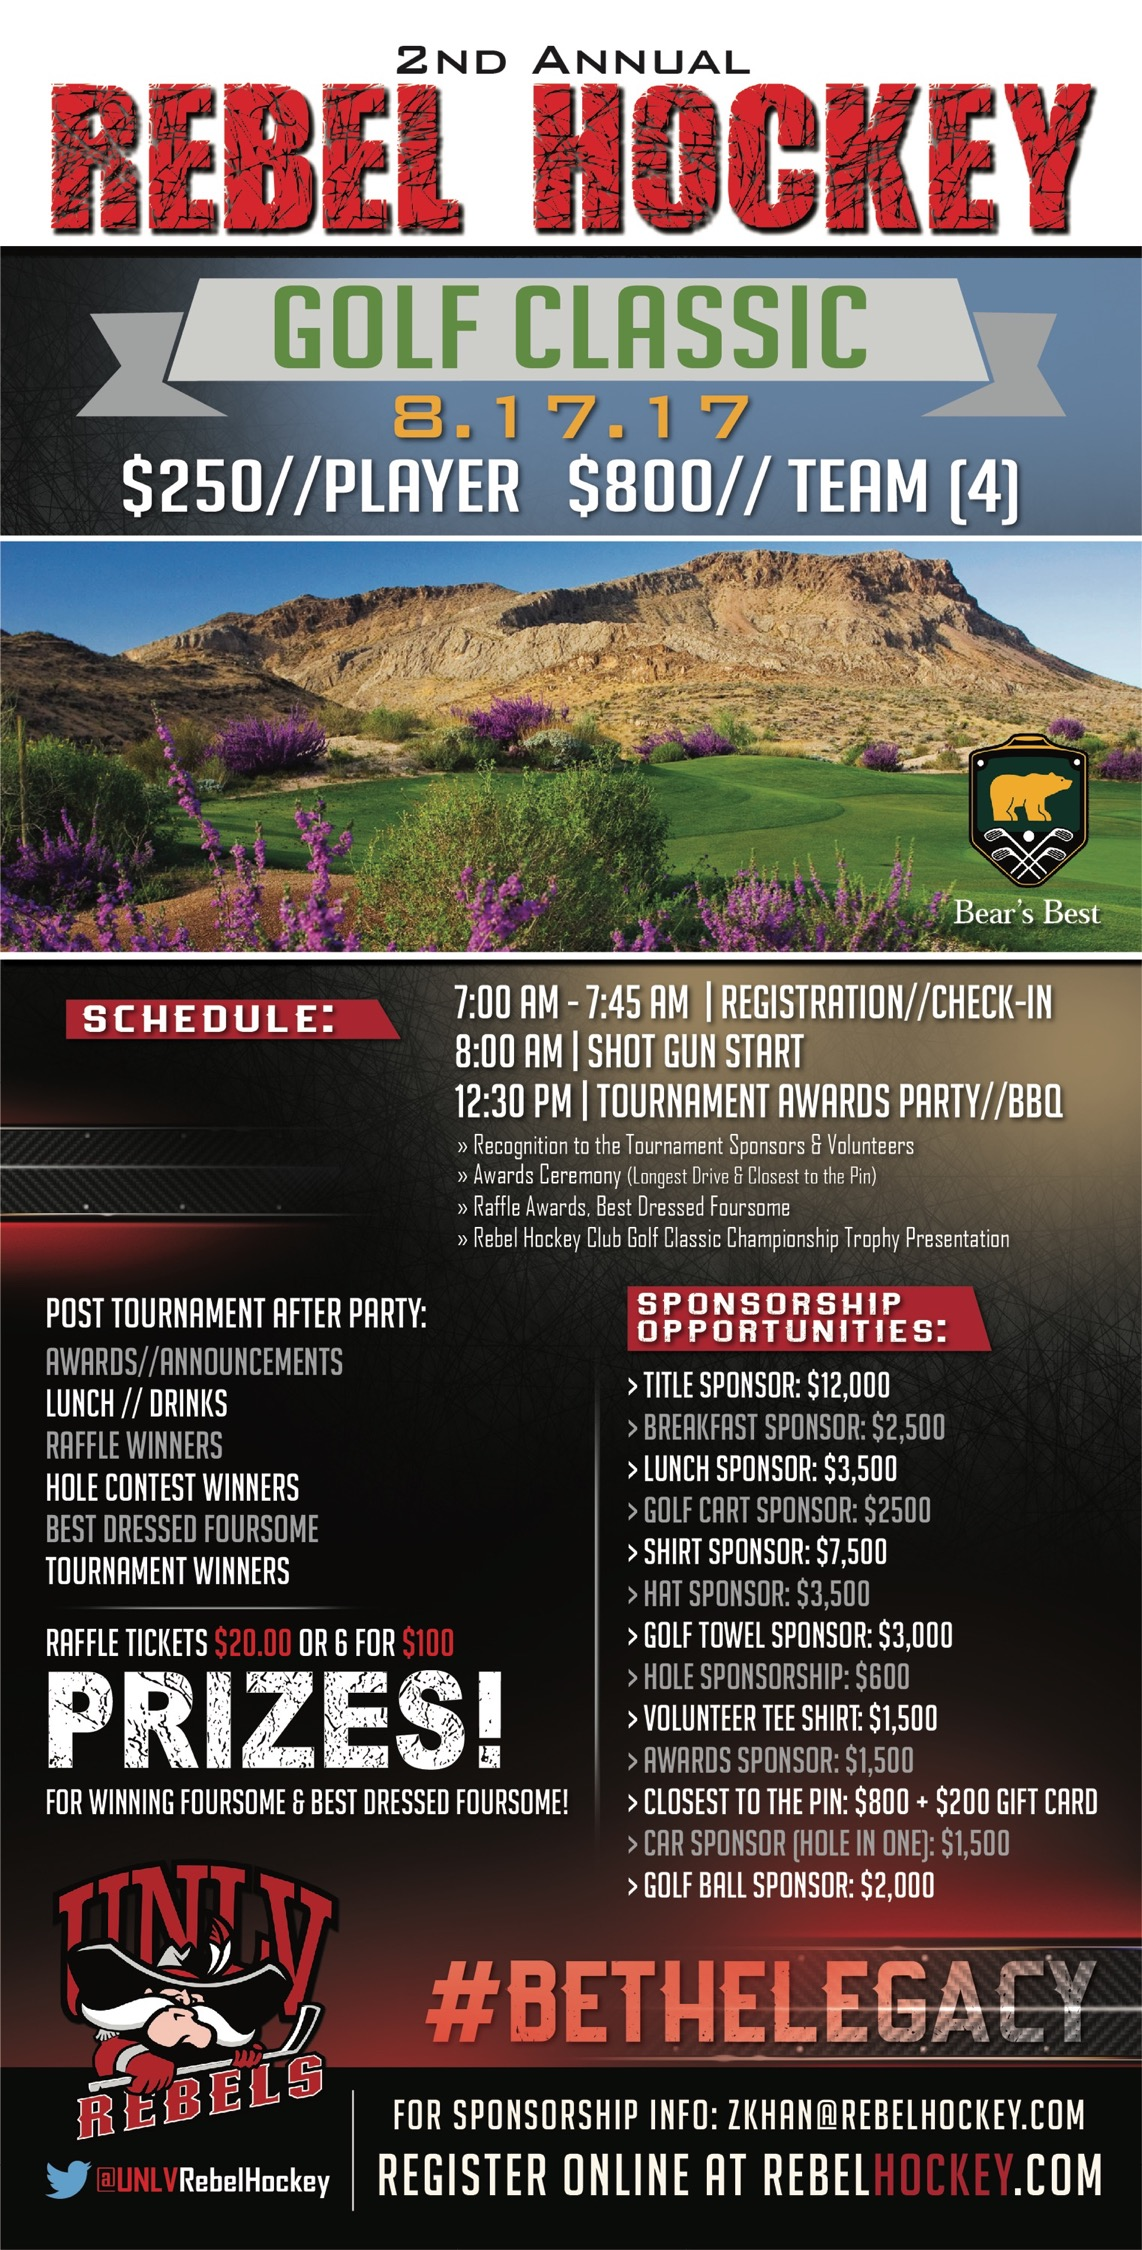 2nd Annual UNLV Hockey Golf Classic 2017